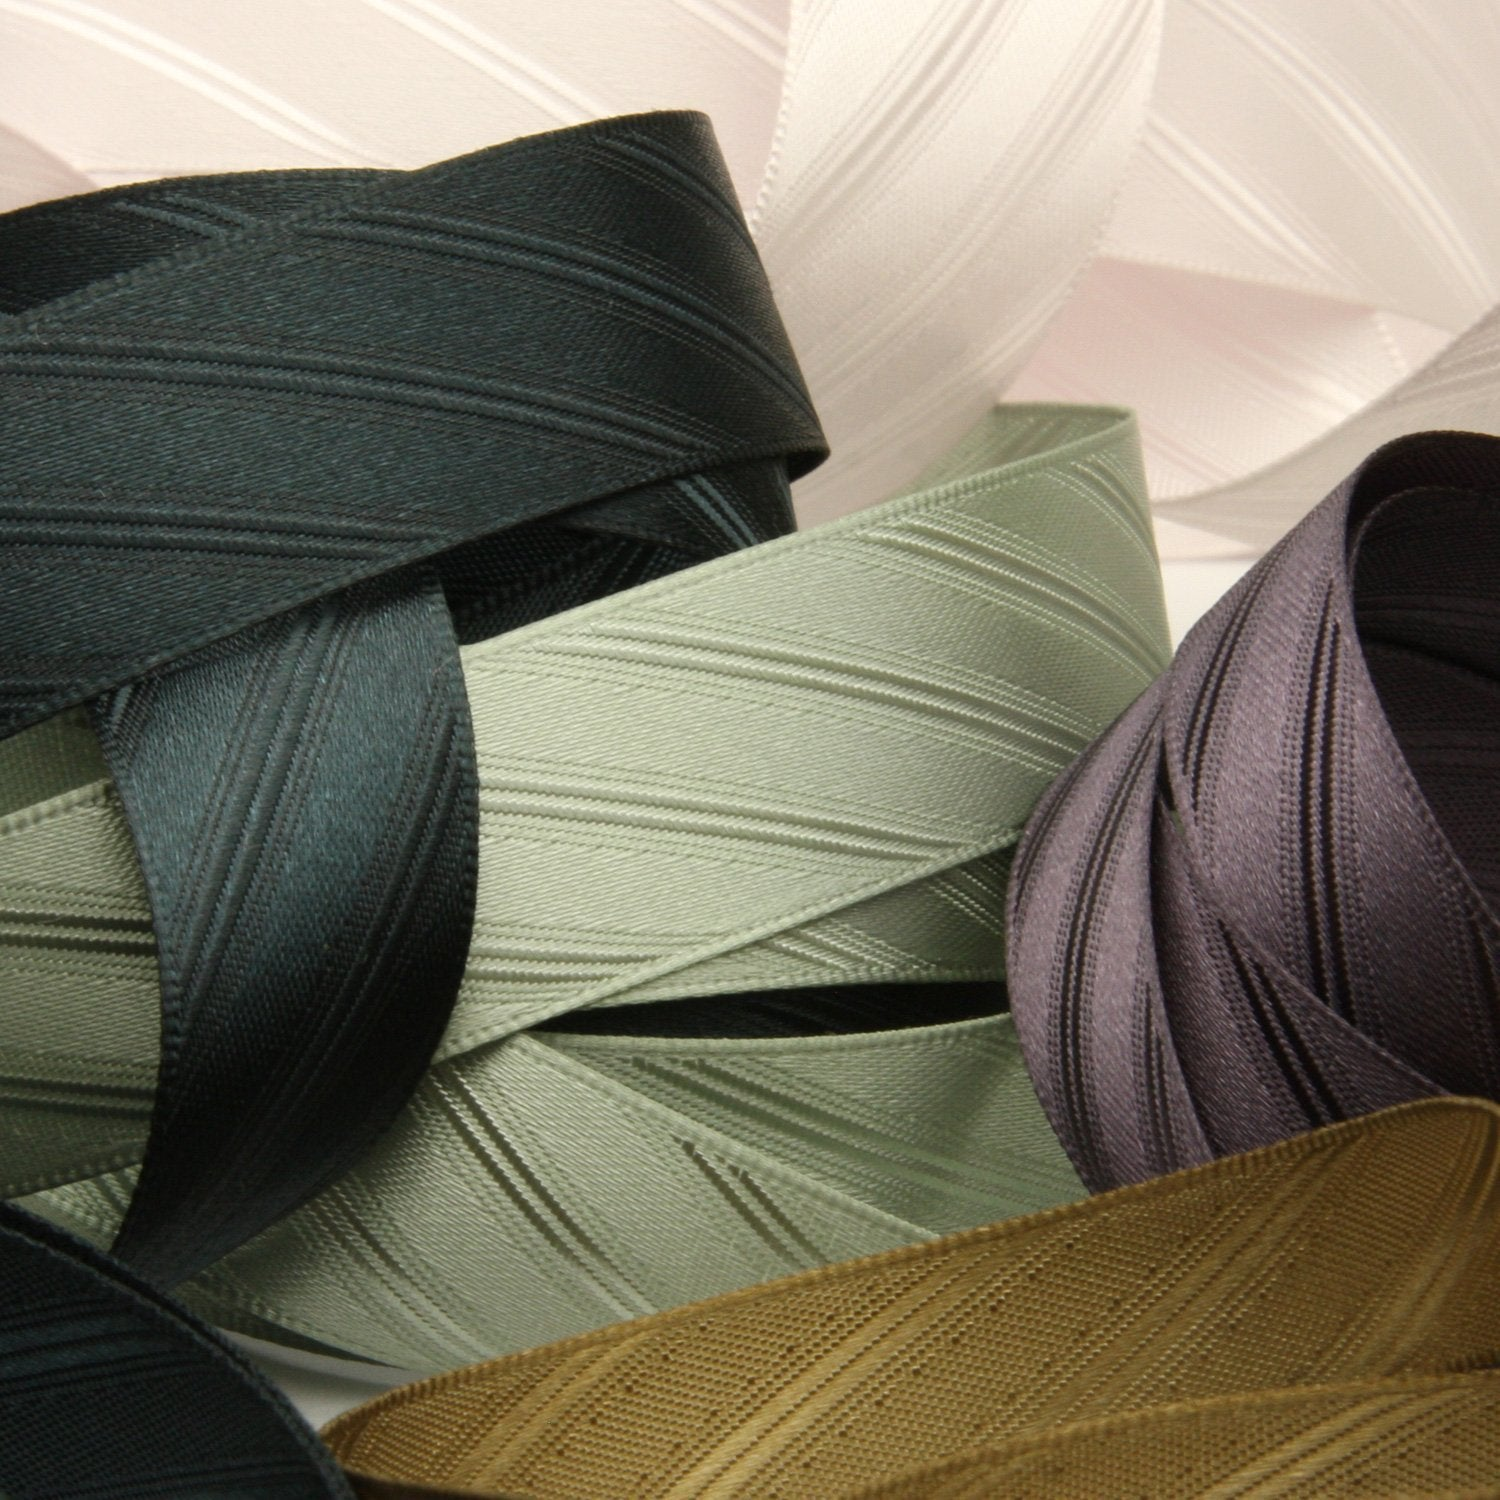 FUJIYAMA RIBBON [Wholesale] Twill Satin Ribbon 12mm 30 Meters Roll